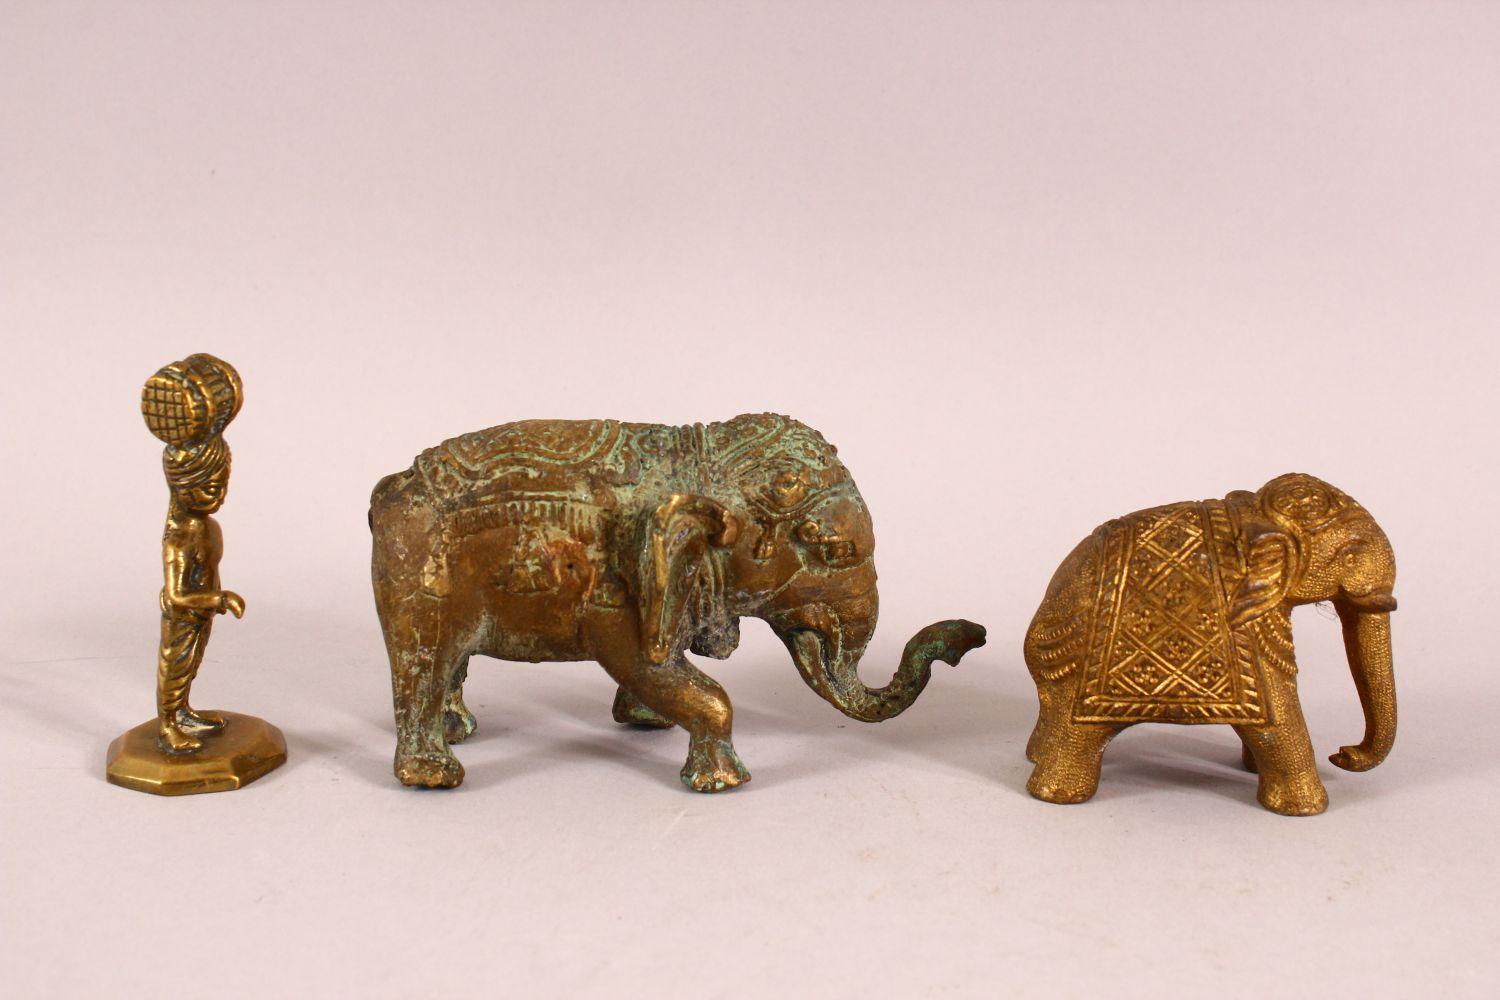 THREE INDIAN GILT METAL FIGURES, two elephant and a figure. - Image 2 of 3